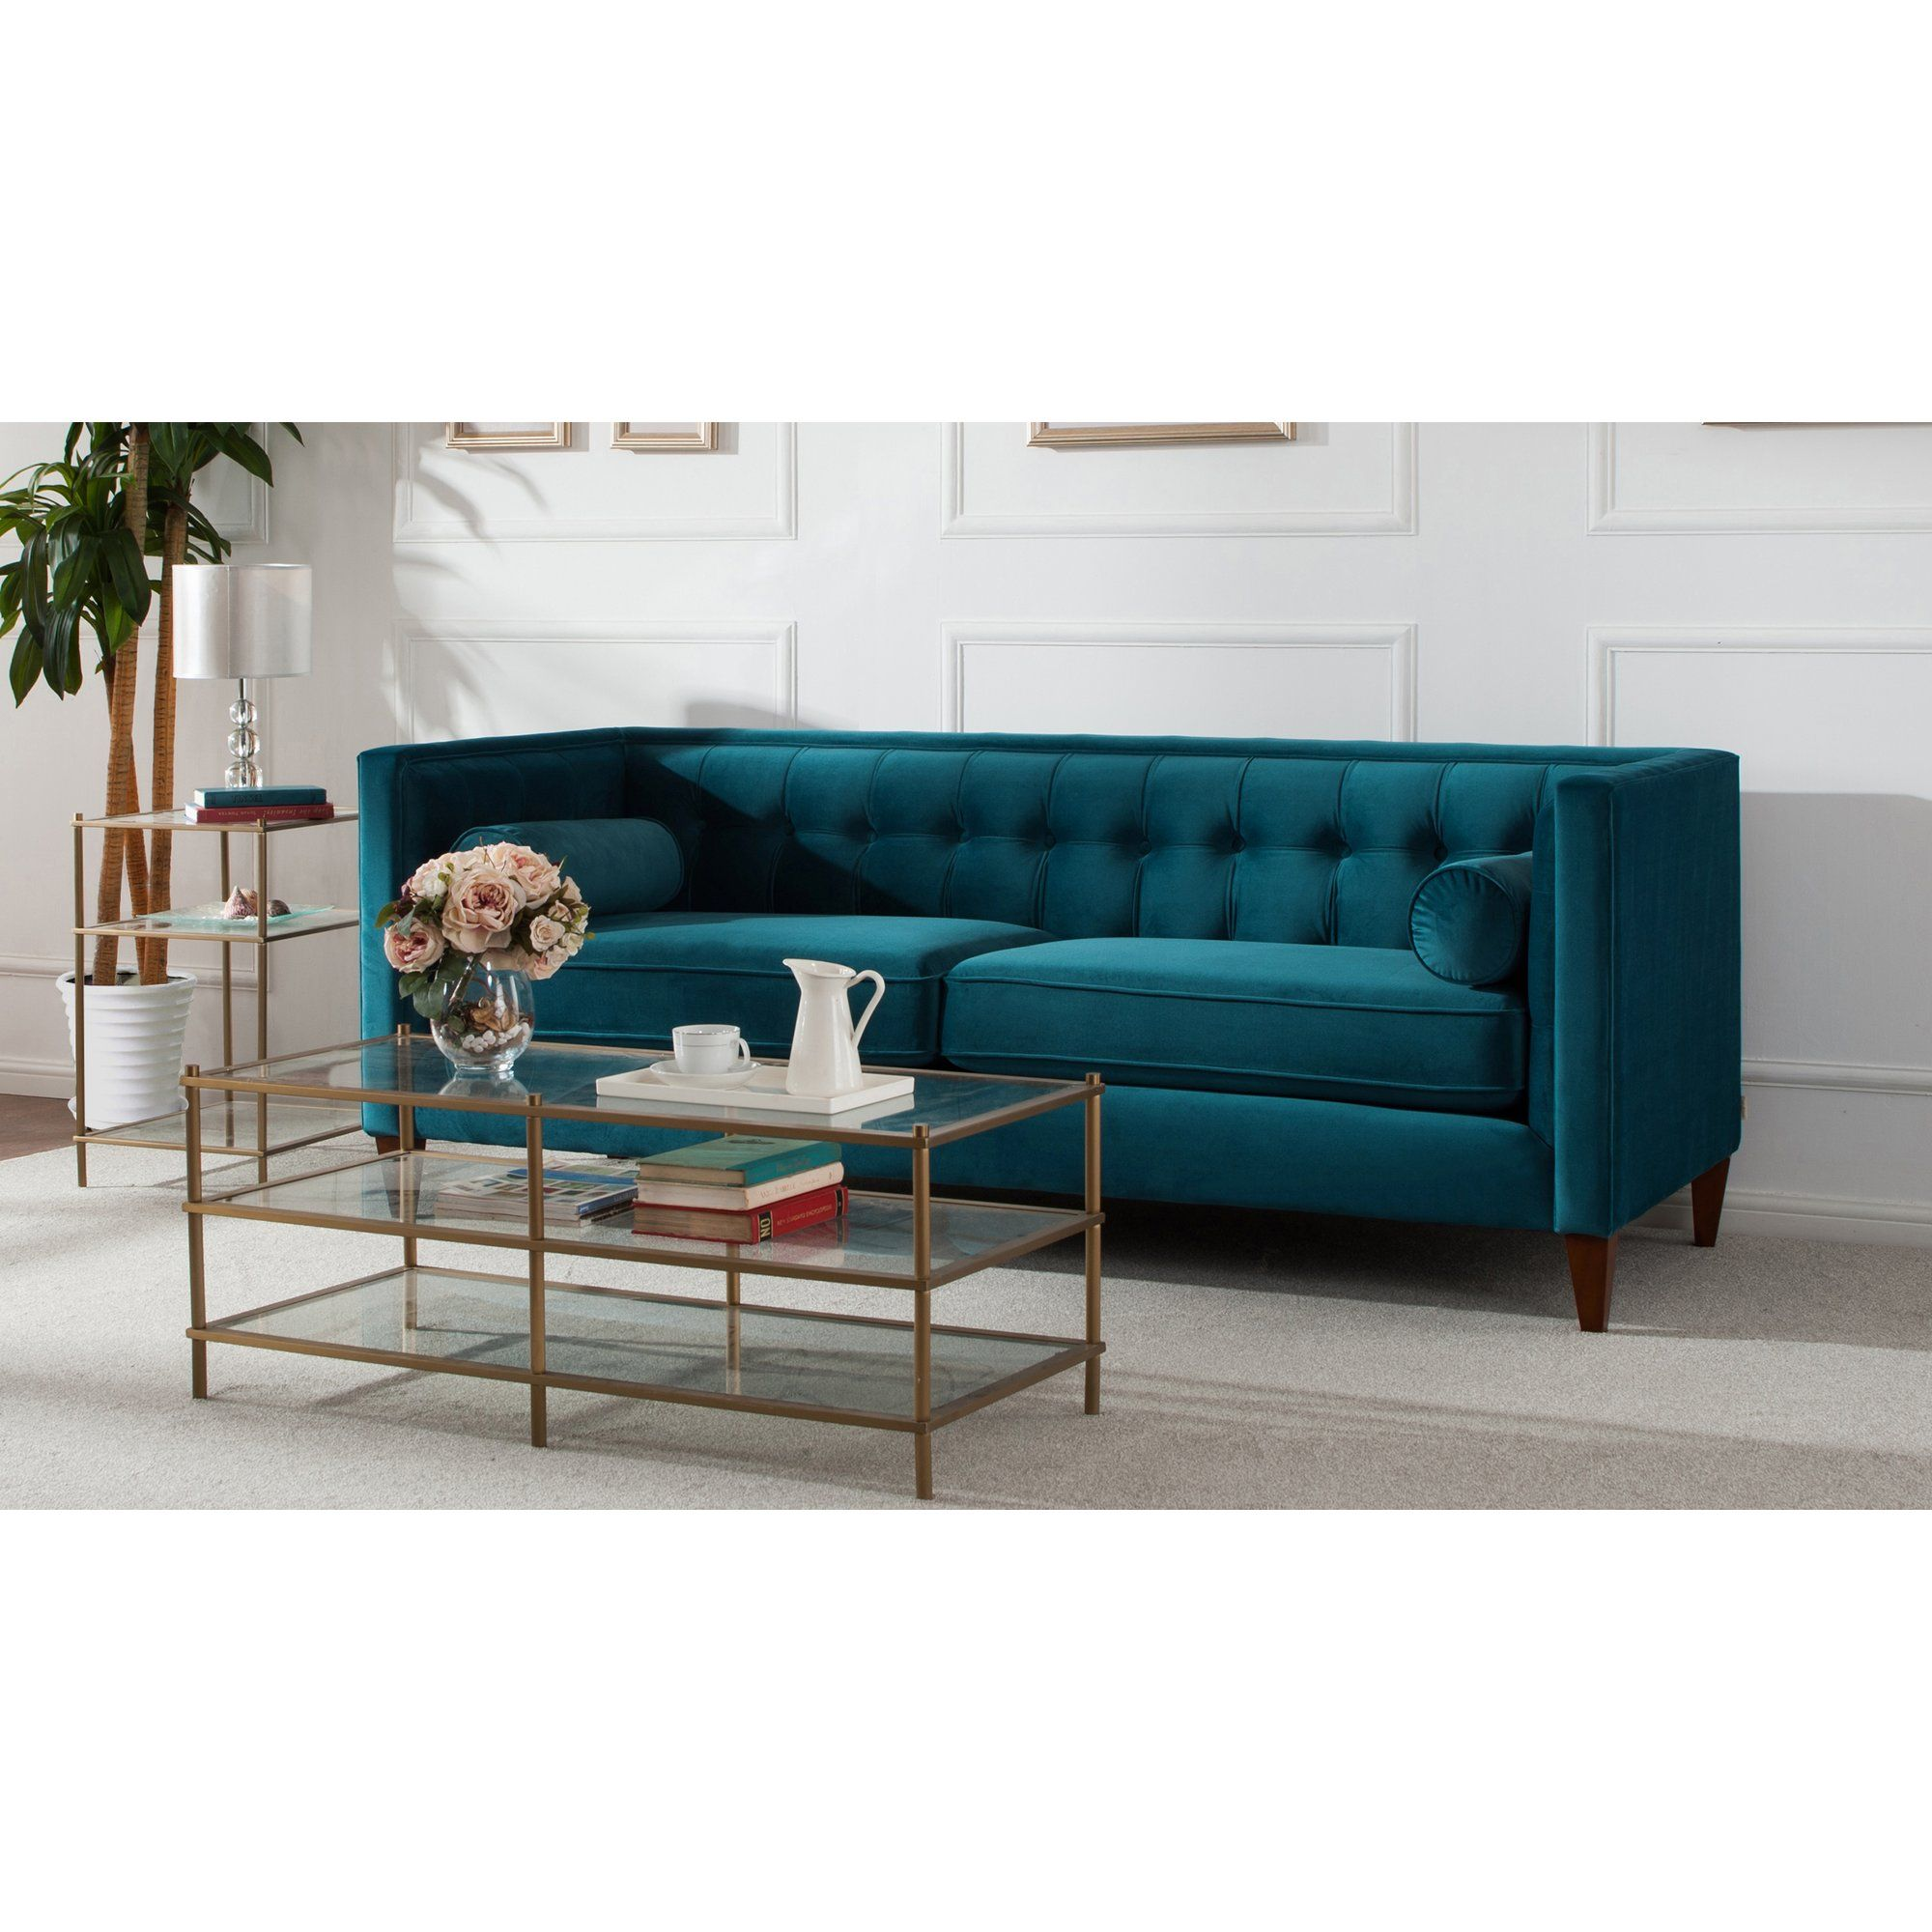 Amazing Harcourt Tufted Chesterfield Sofa In Teal